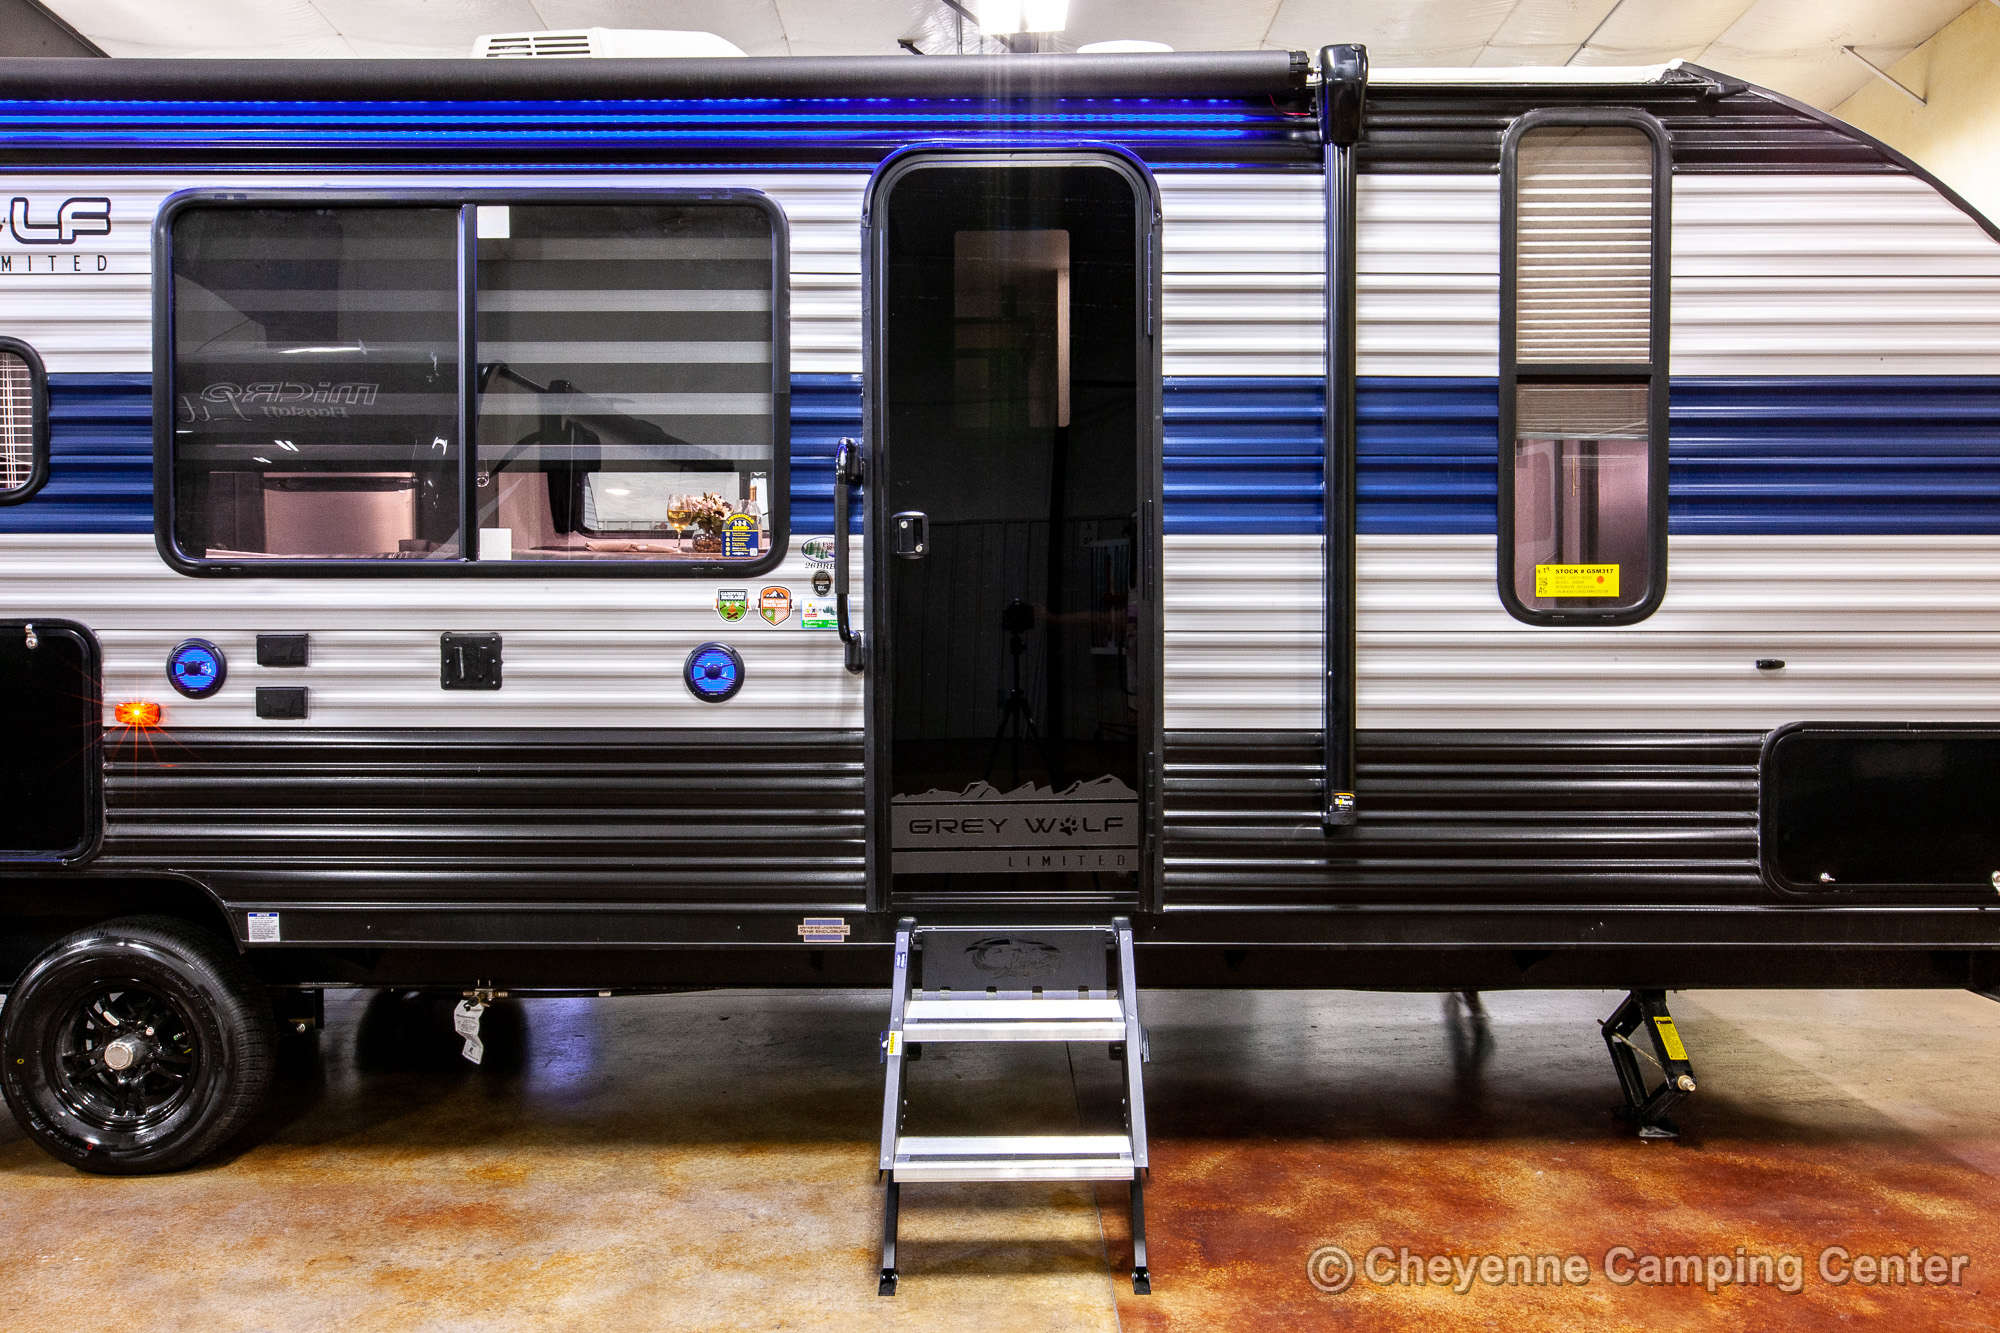 2021 Forest River Cherokee Grey Wolf 26BRB Bunkhouse Travel Trailer Exterior Image